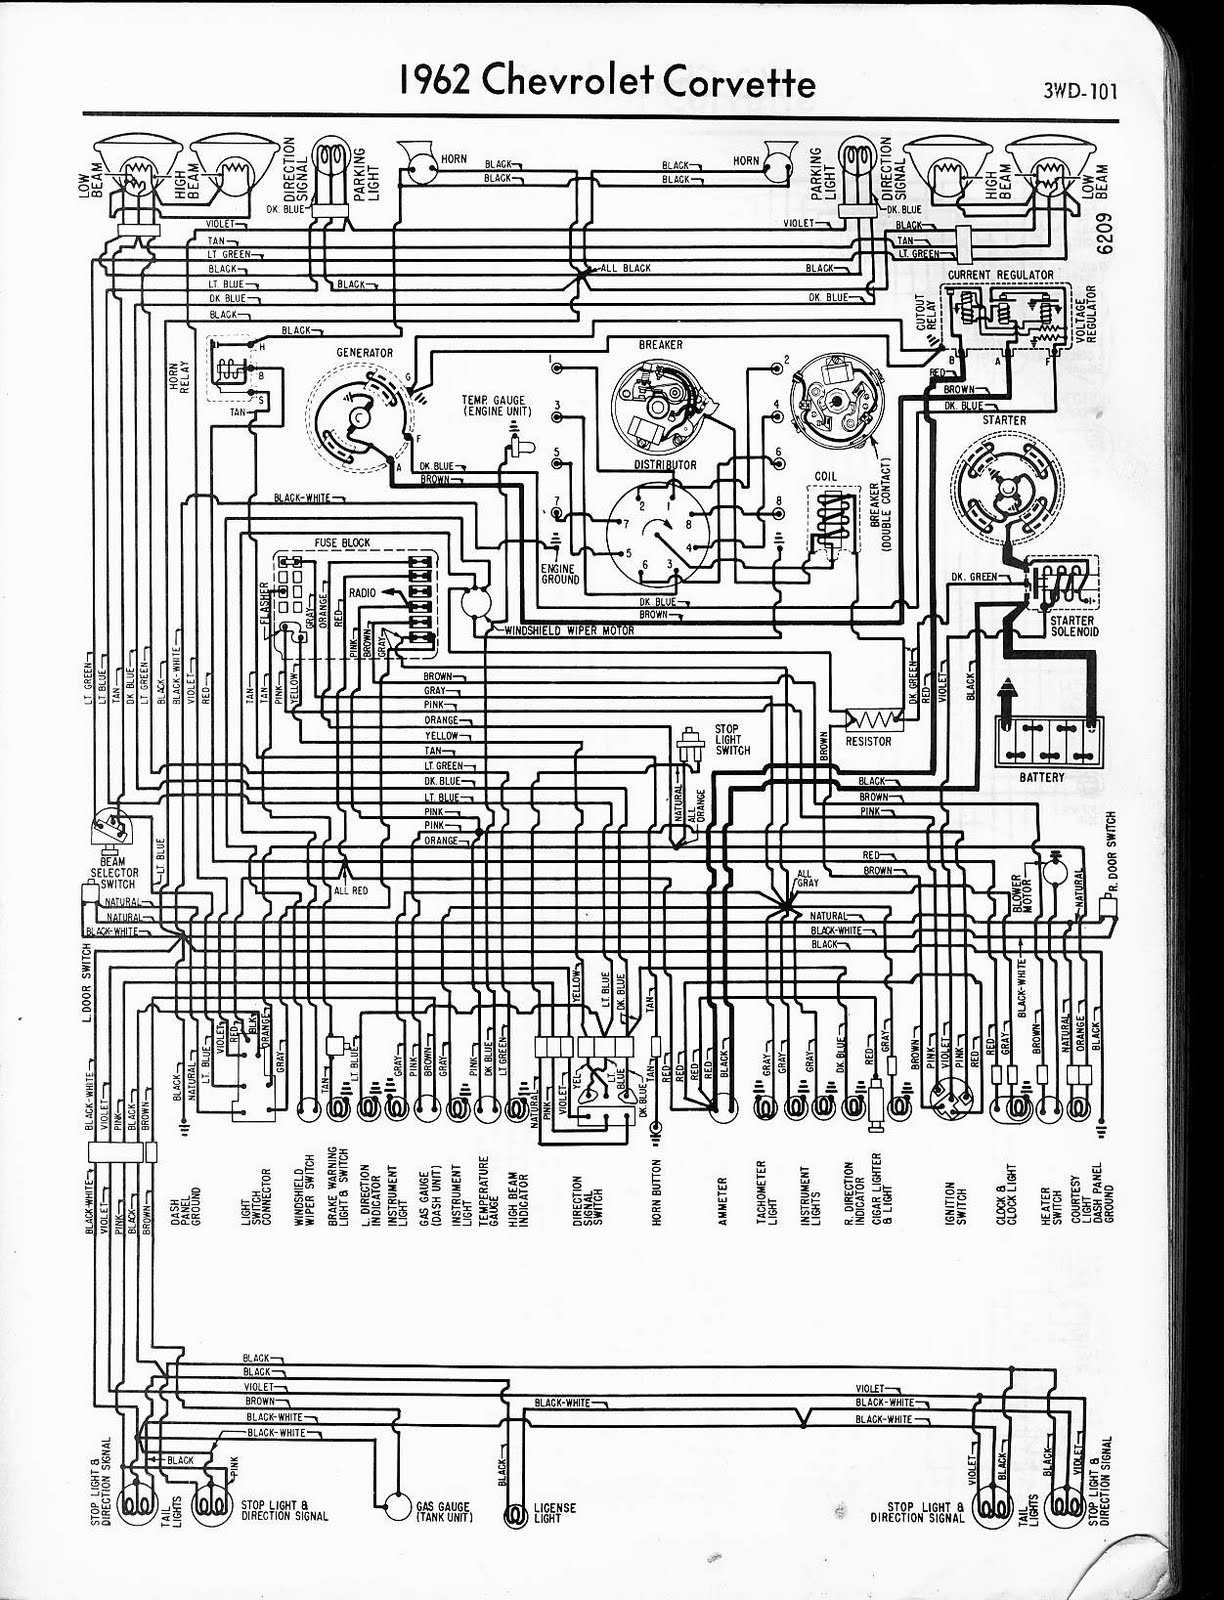 1965 chevy truck turn signal wiring diagram � free auto wiring diagram 1962  chevrolet corvette wiring